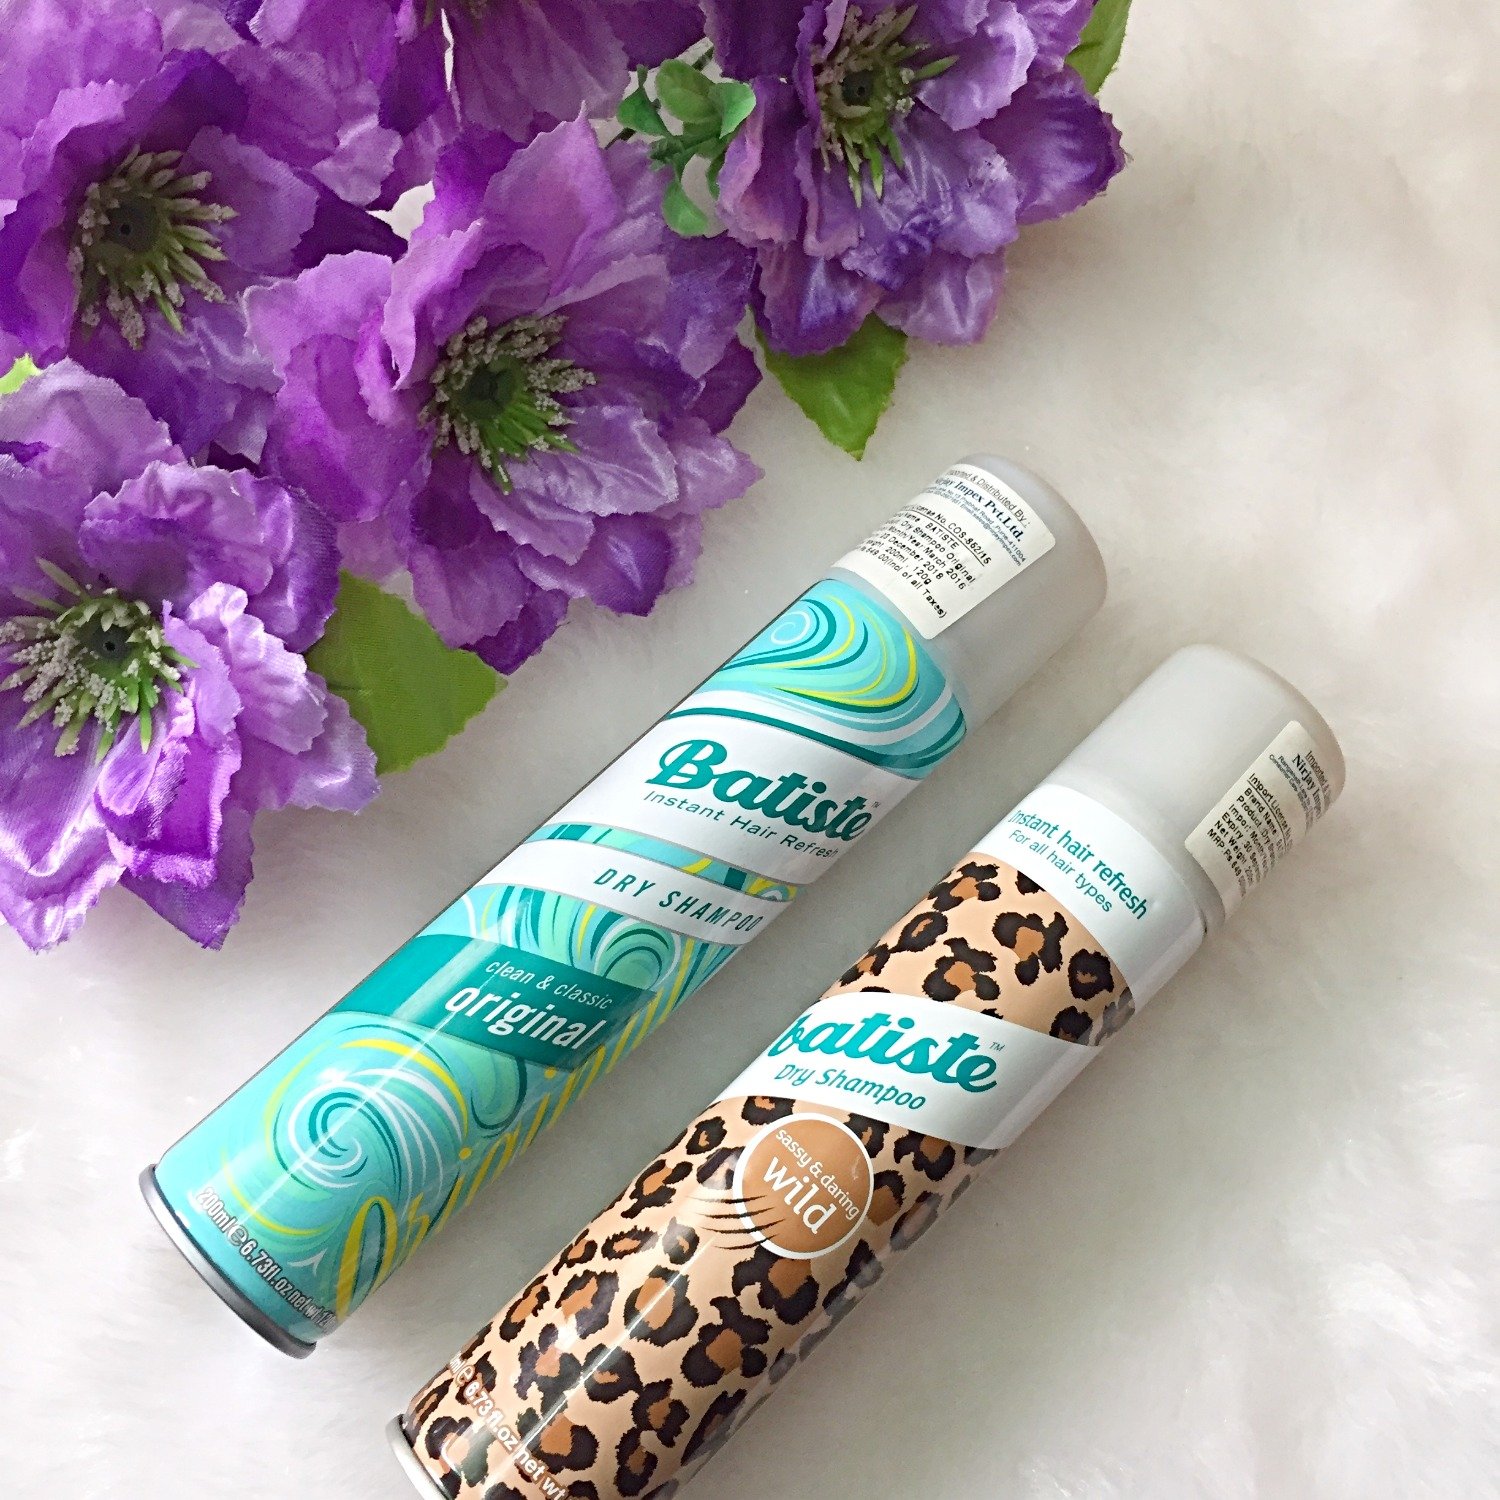 Batiste Dry Shampoo Sassy And Daring Wild Clean Classic Orignal Review Swatches Ourglamdiaries Latest Fashion Real Reviews